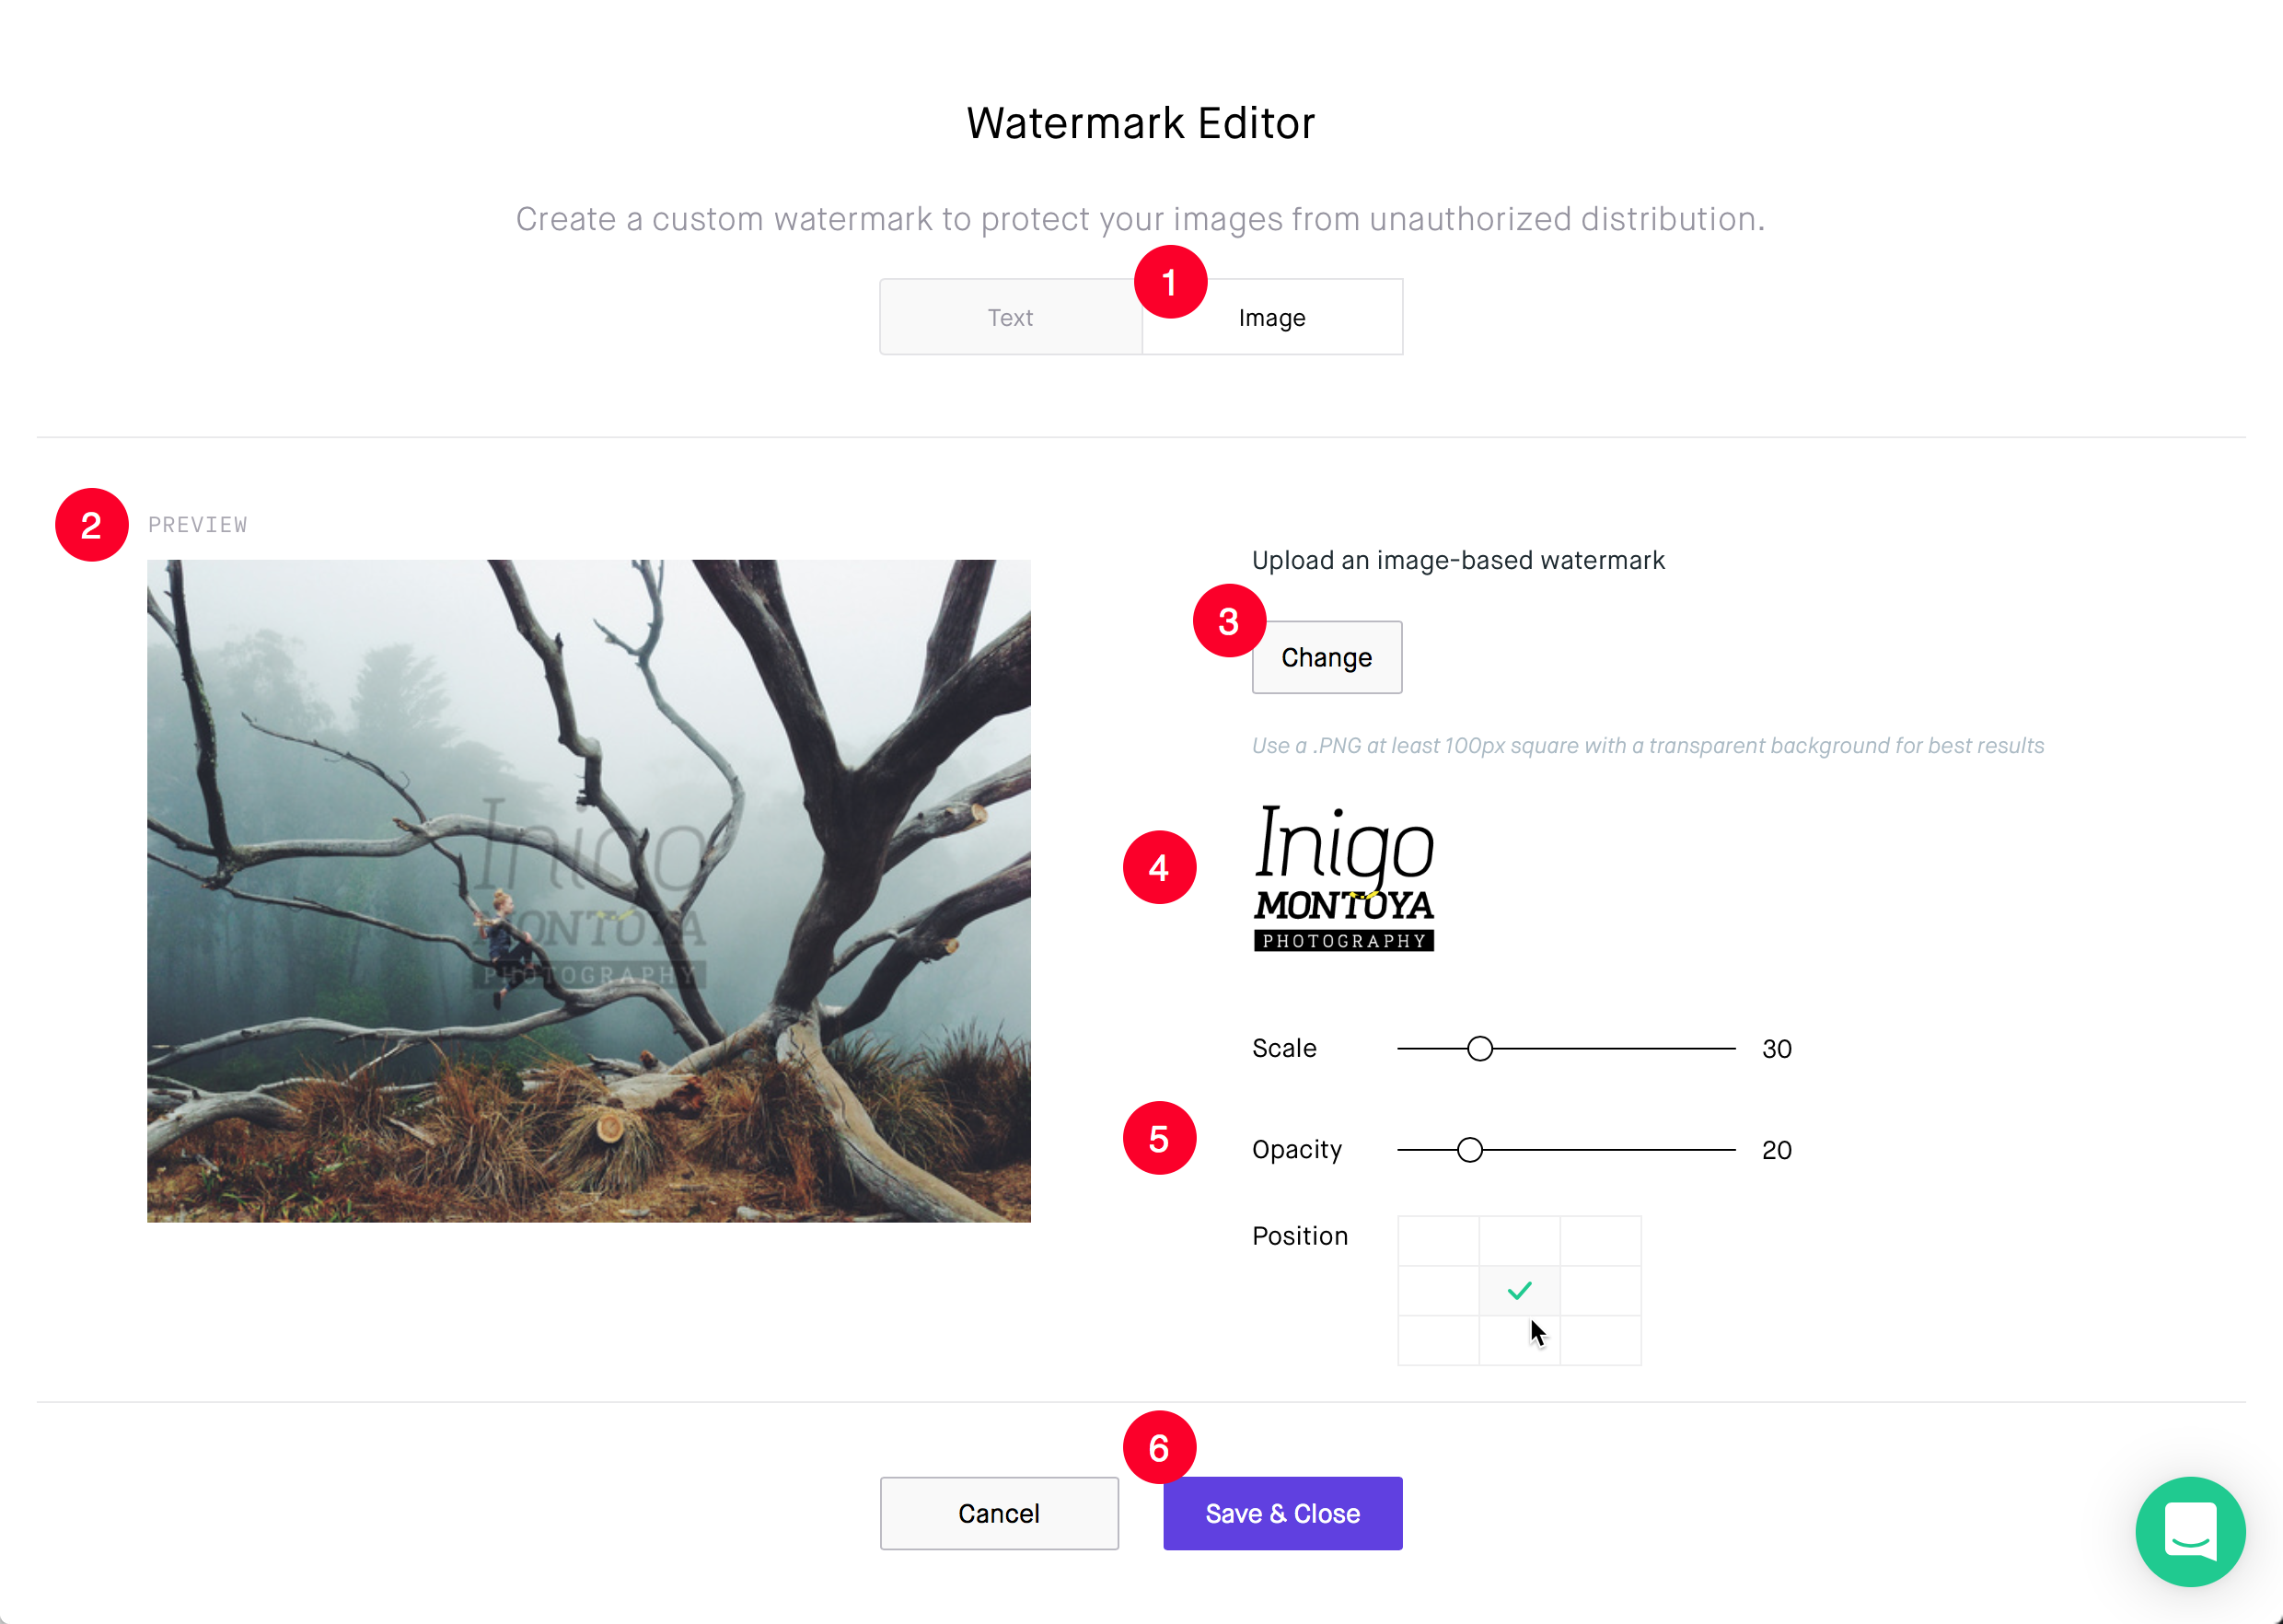 The watermark editor allows you to add your logo graphic and scale and set the opacity over an image